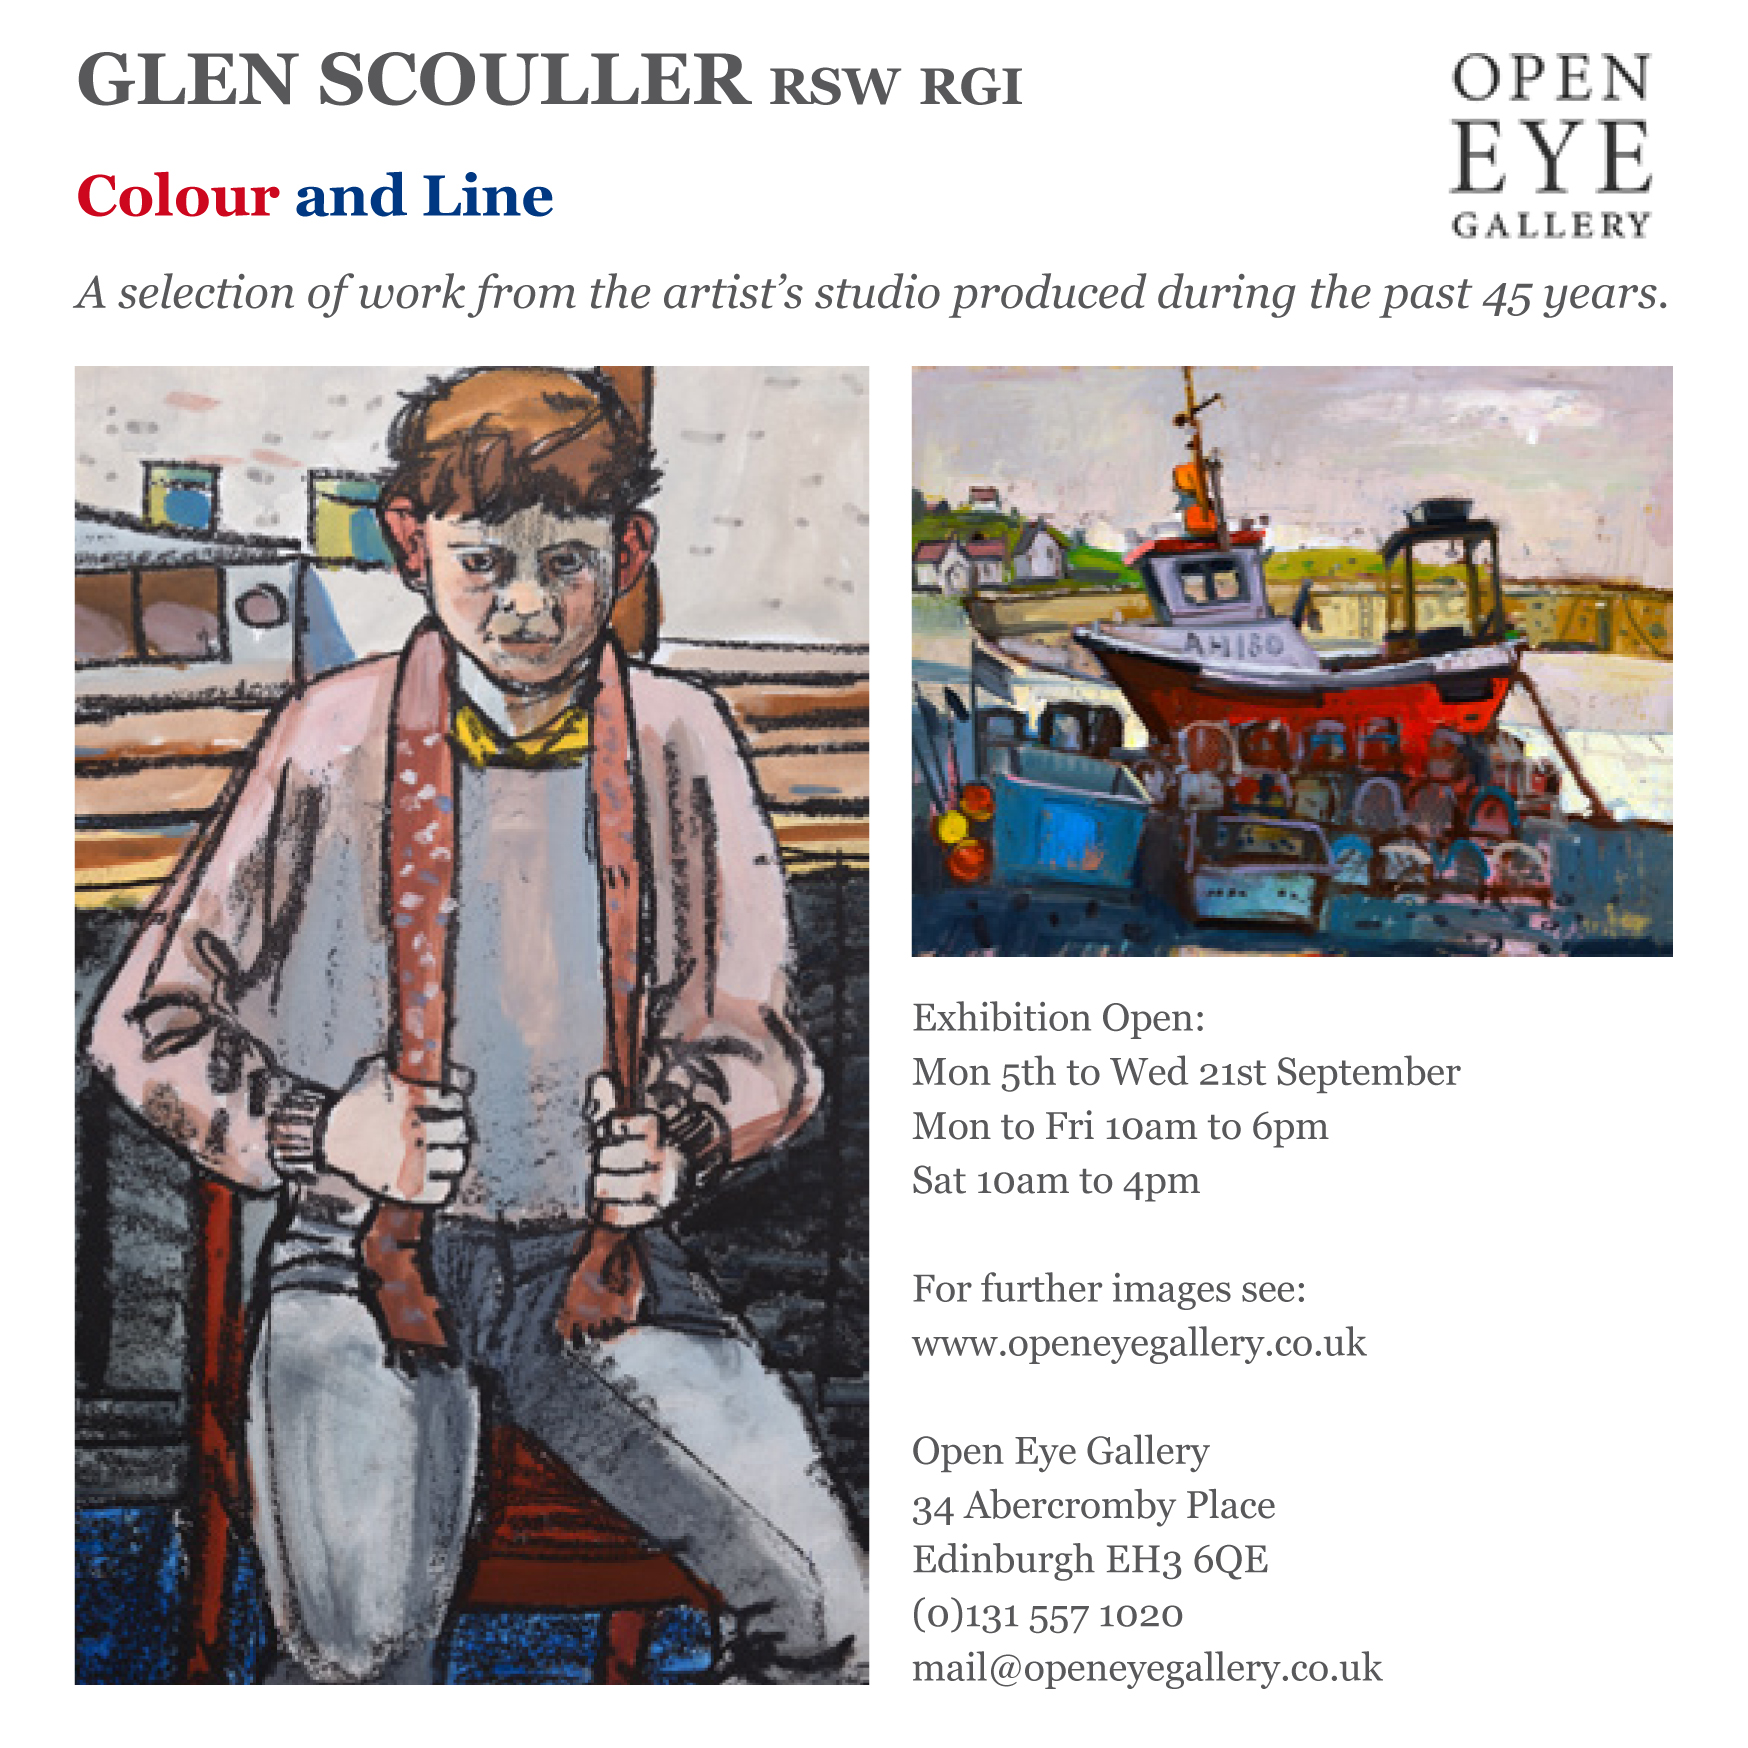 Colour and Line  showcases a selection of work from the artist's studio produced during the past 45 years. The exhibition will run from 5th to 21st September 2016 at the  Open Eye Gallery , Edinburgh.